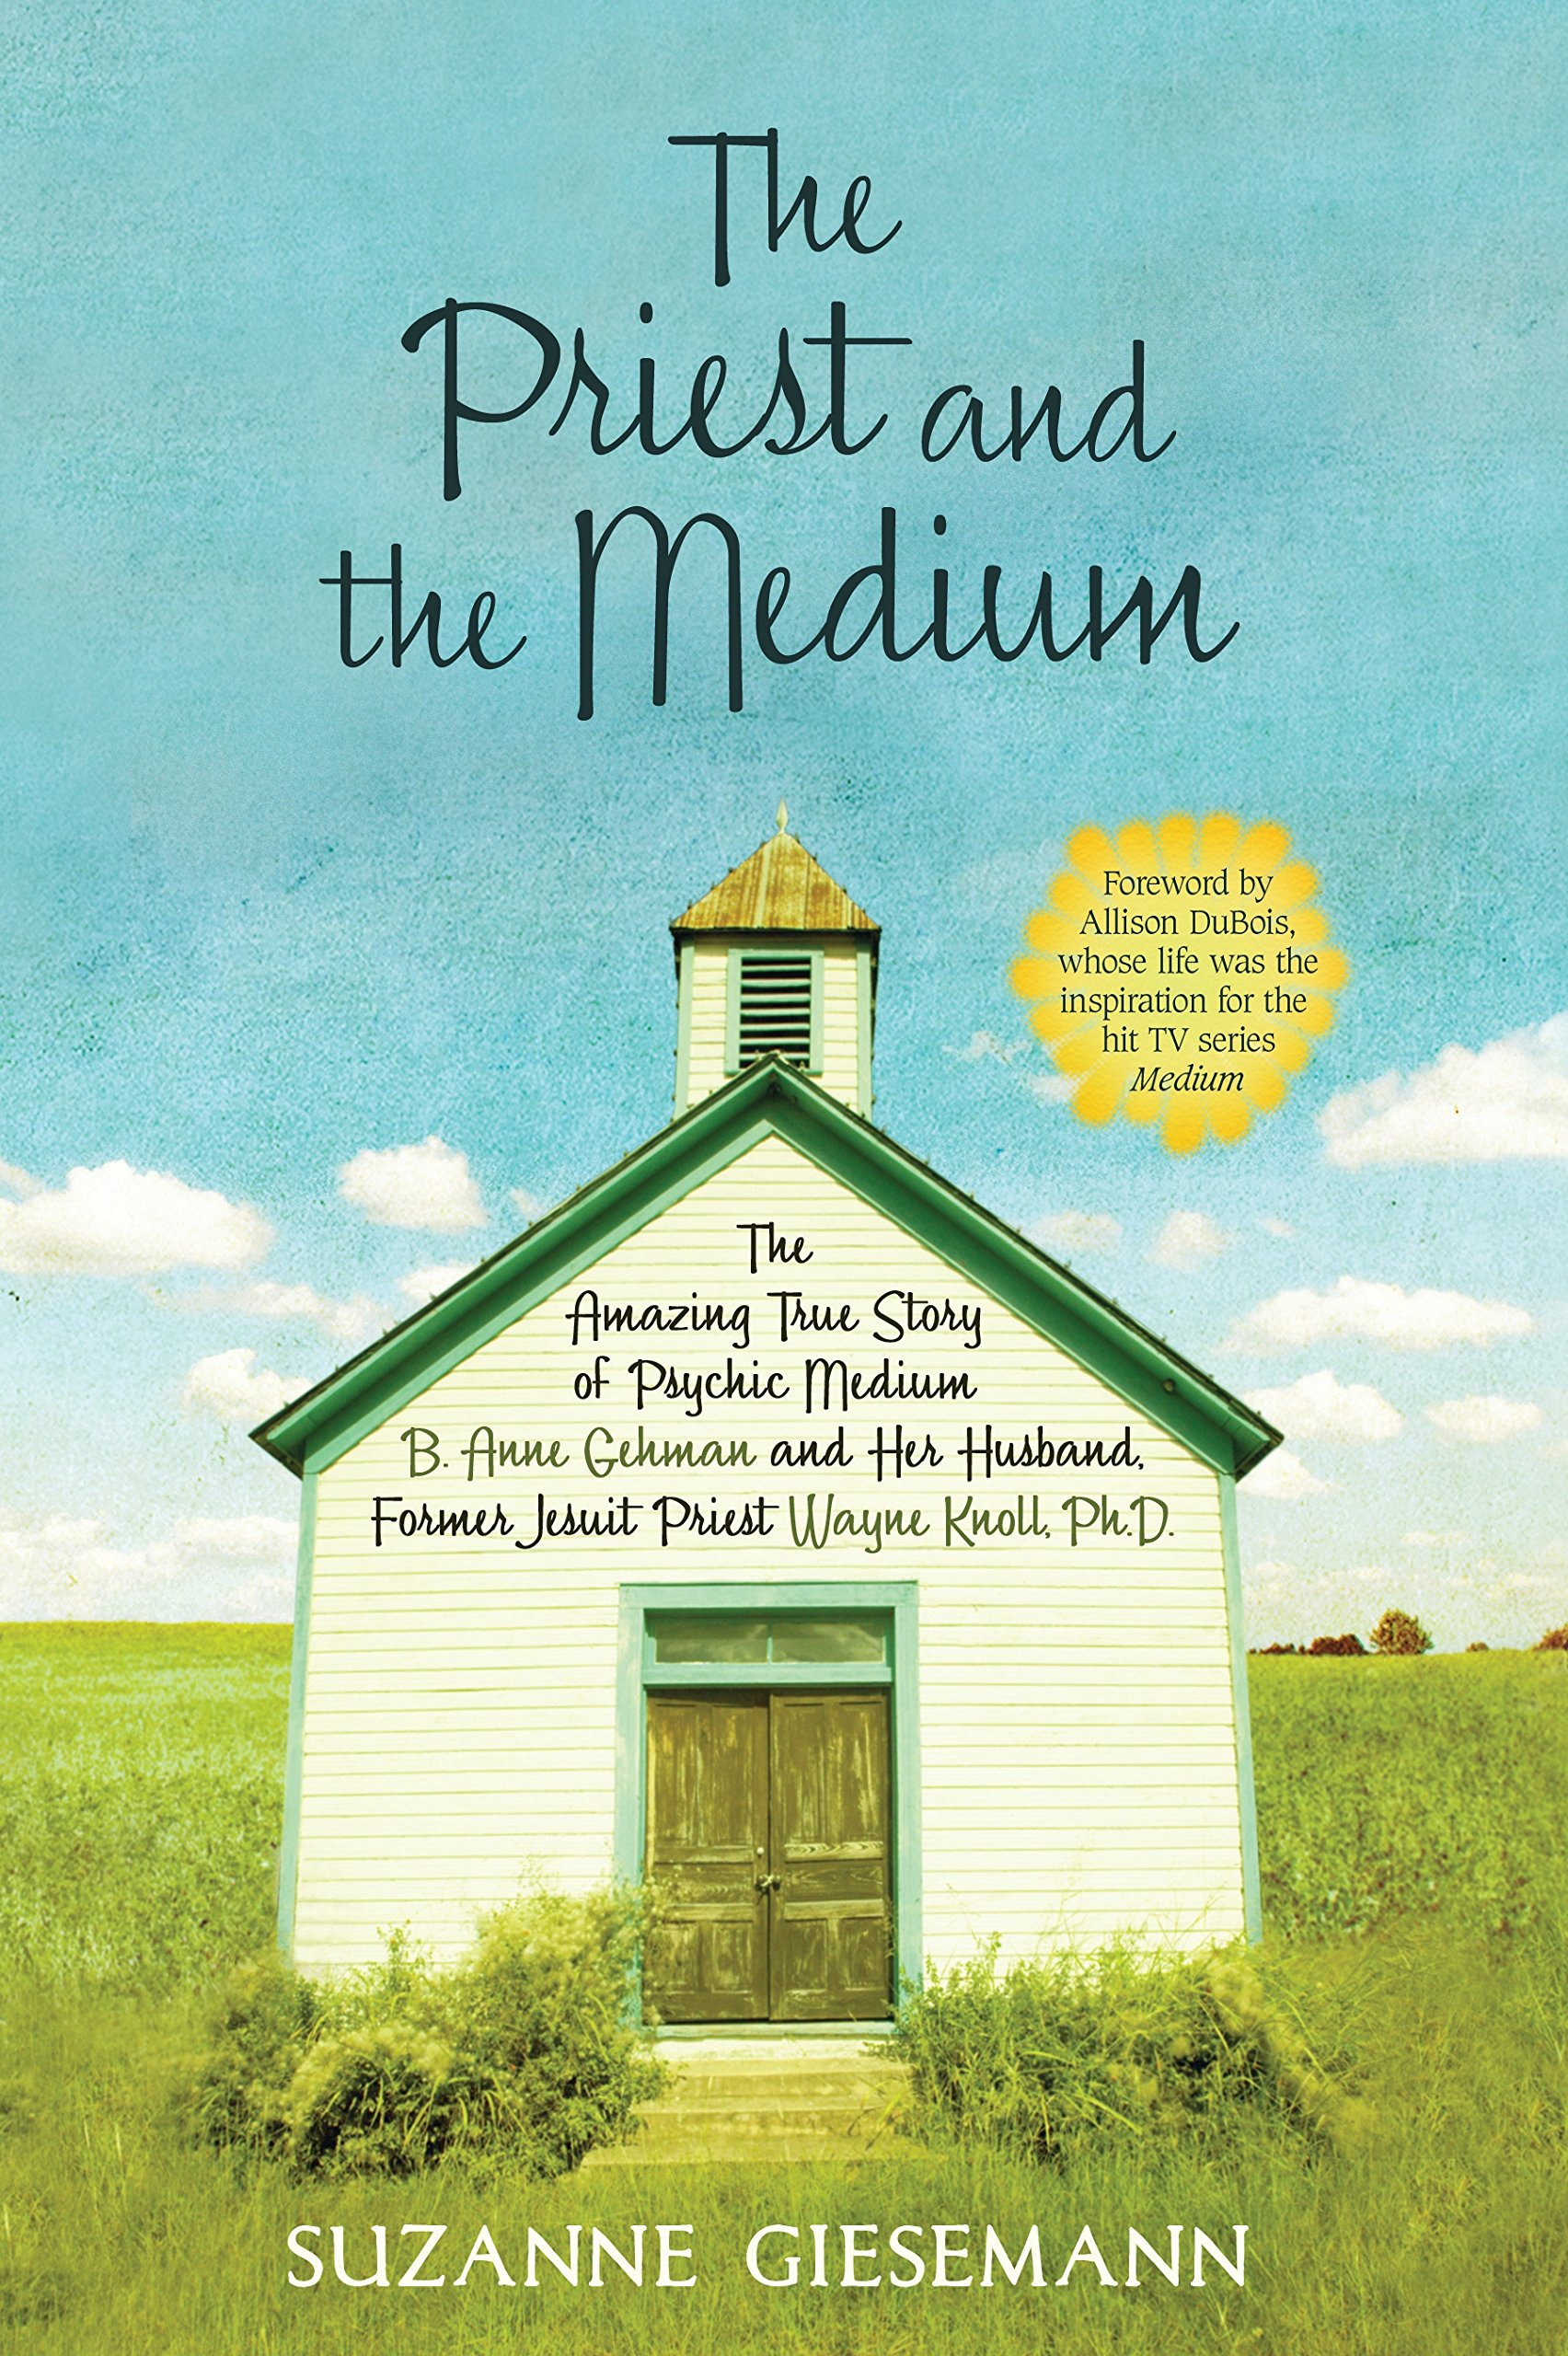 Amazon.com: The Priest and the Medium: The Amazing True Story of ...